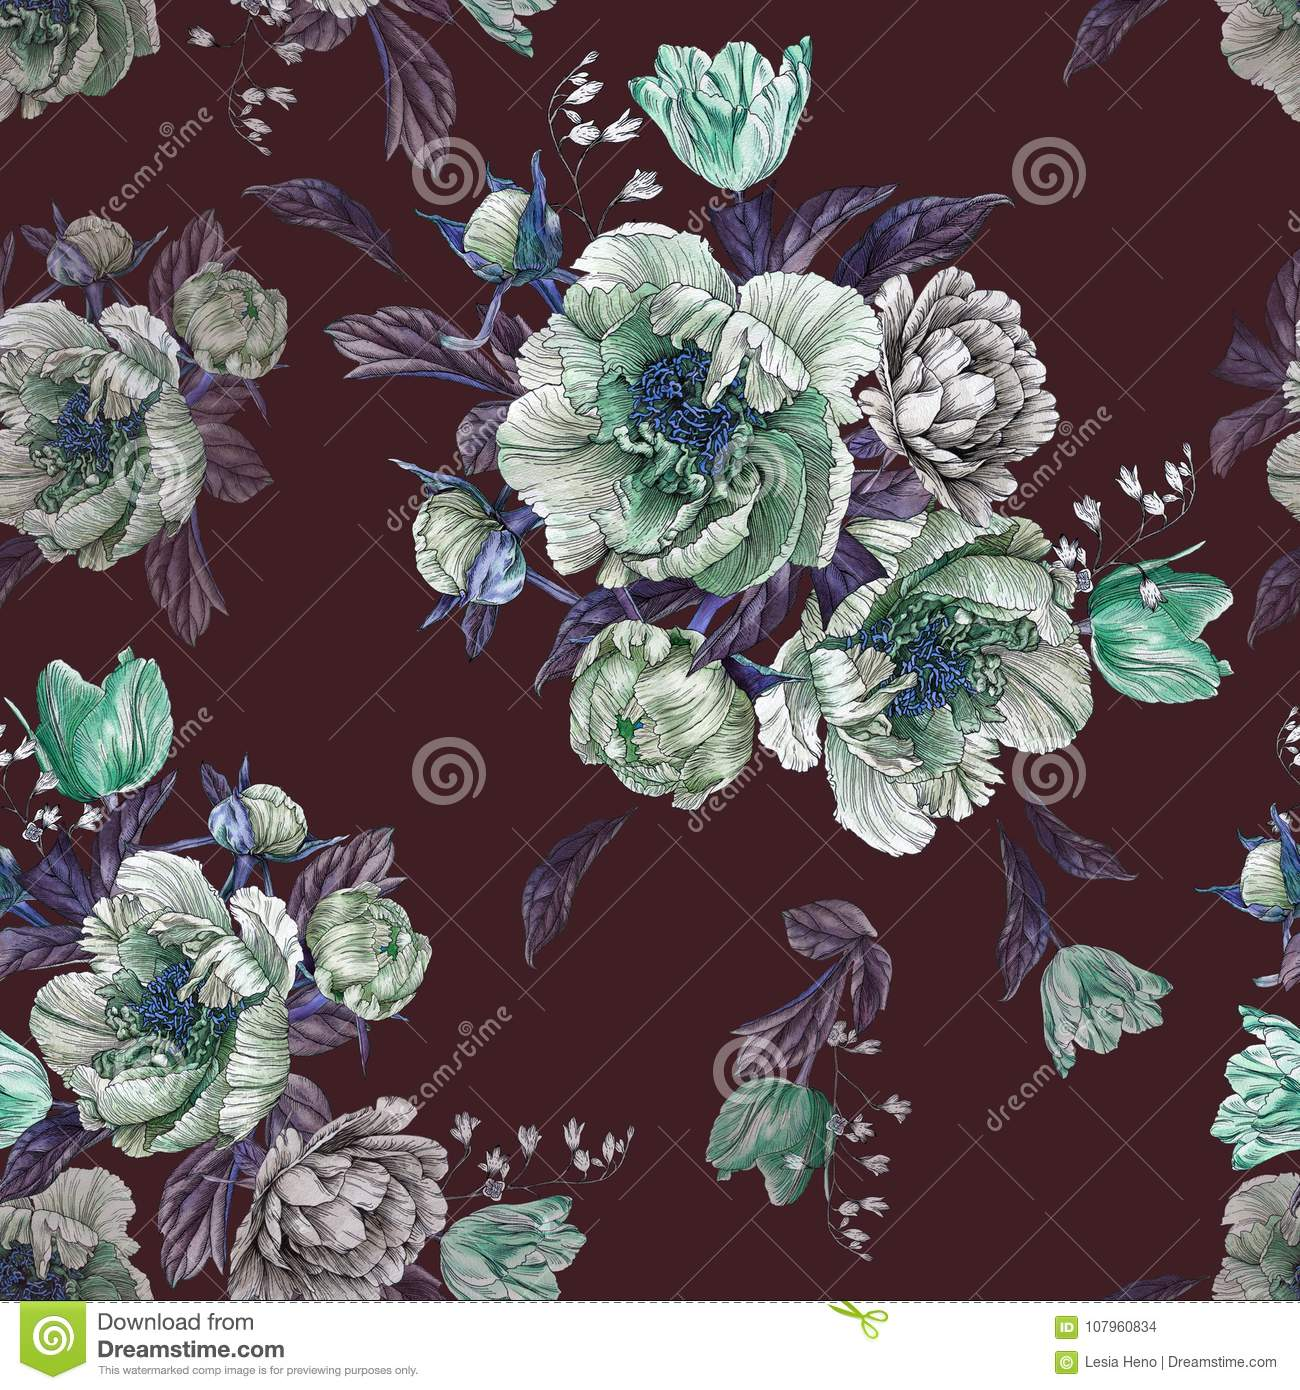 Flower seamless pattern with watercolor peonies, white roses and tulips